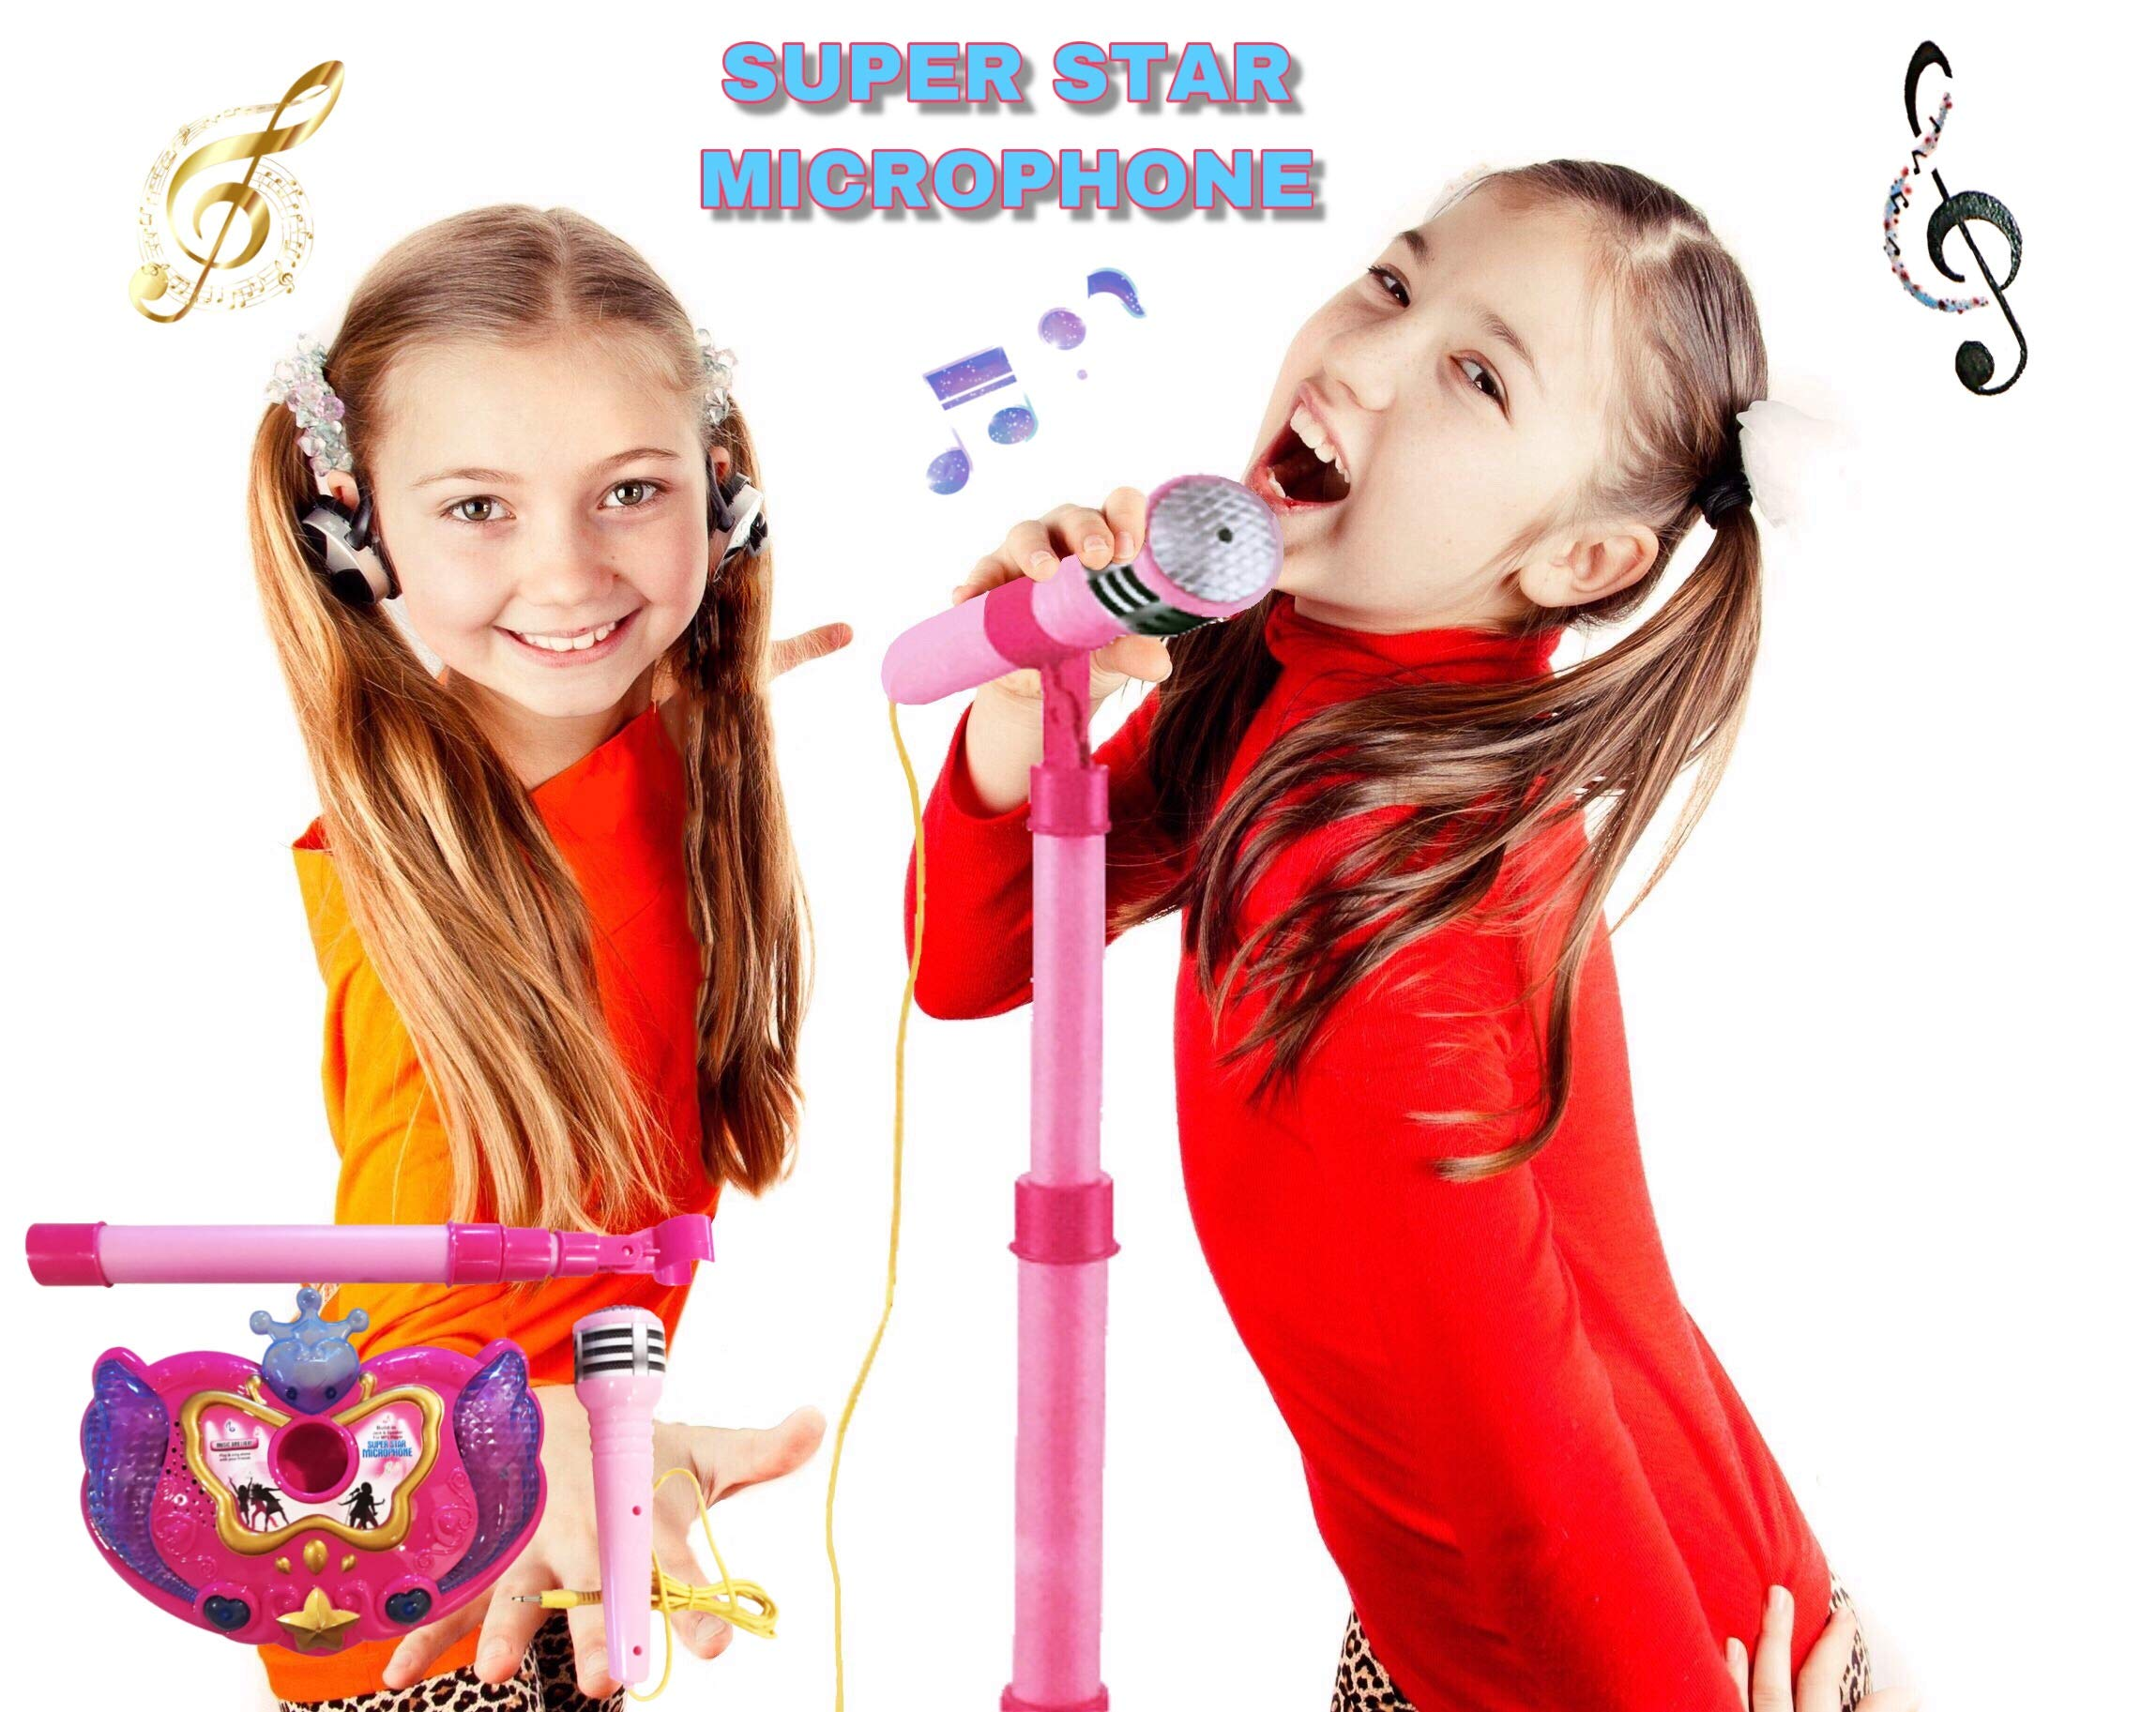 LilPals Princess Karaoke -Children's Toy Stand Up Microphone Play Set w/ Built-in MP3 Player, Speaker, Adjustable Height (Pink) by LilPals (Image #6)